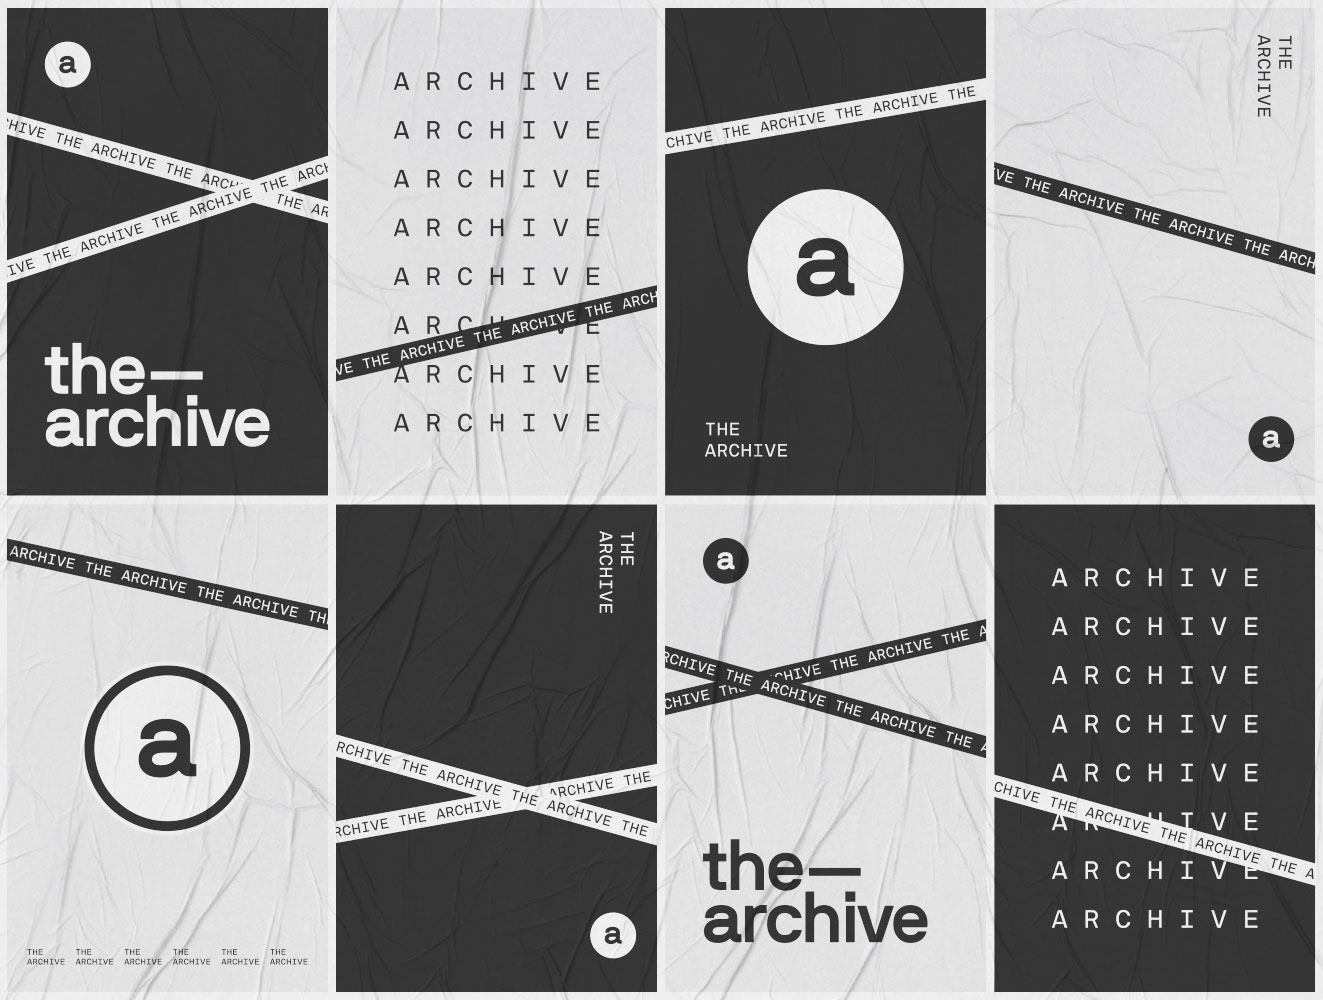 TheArchive-posters.jpg